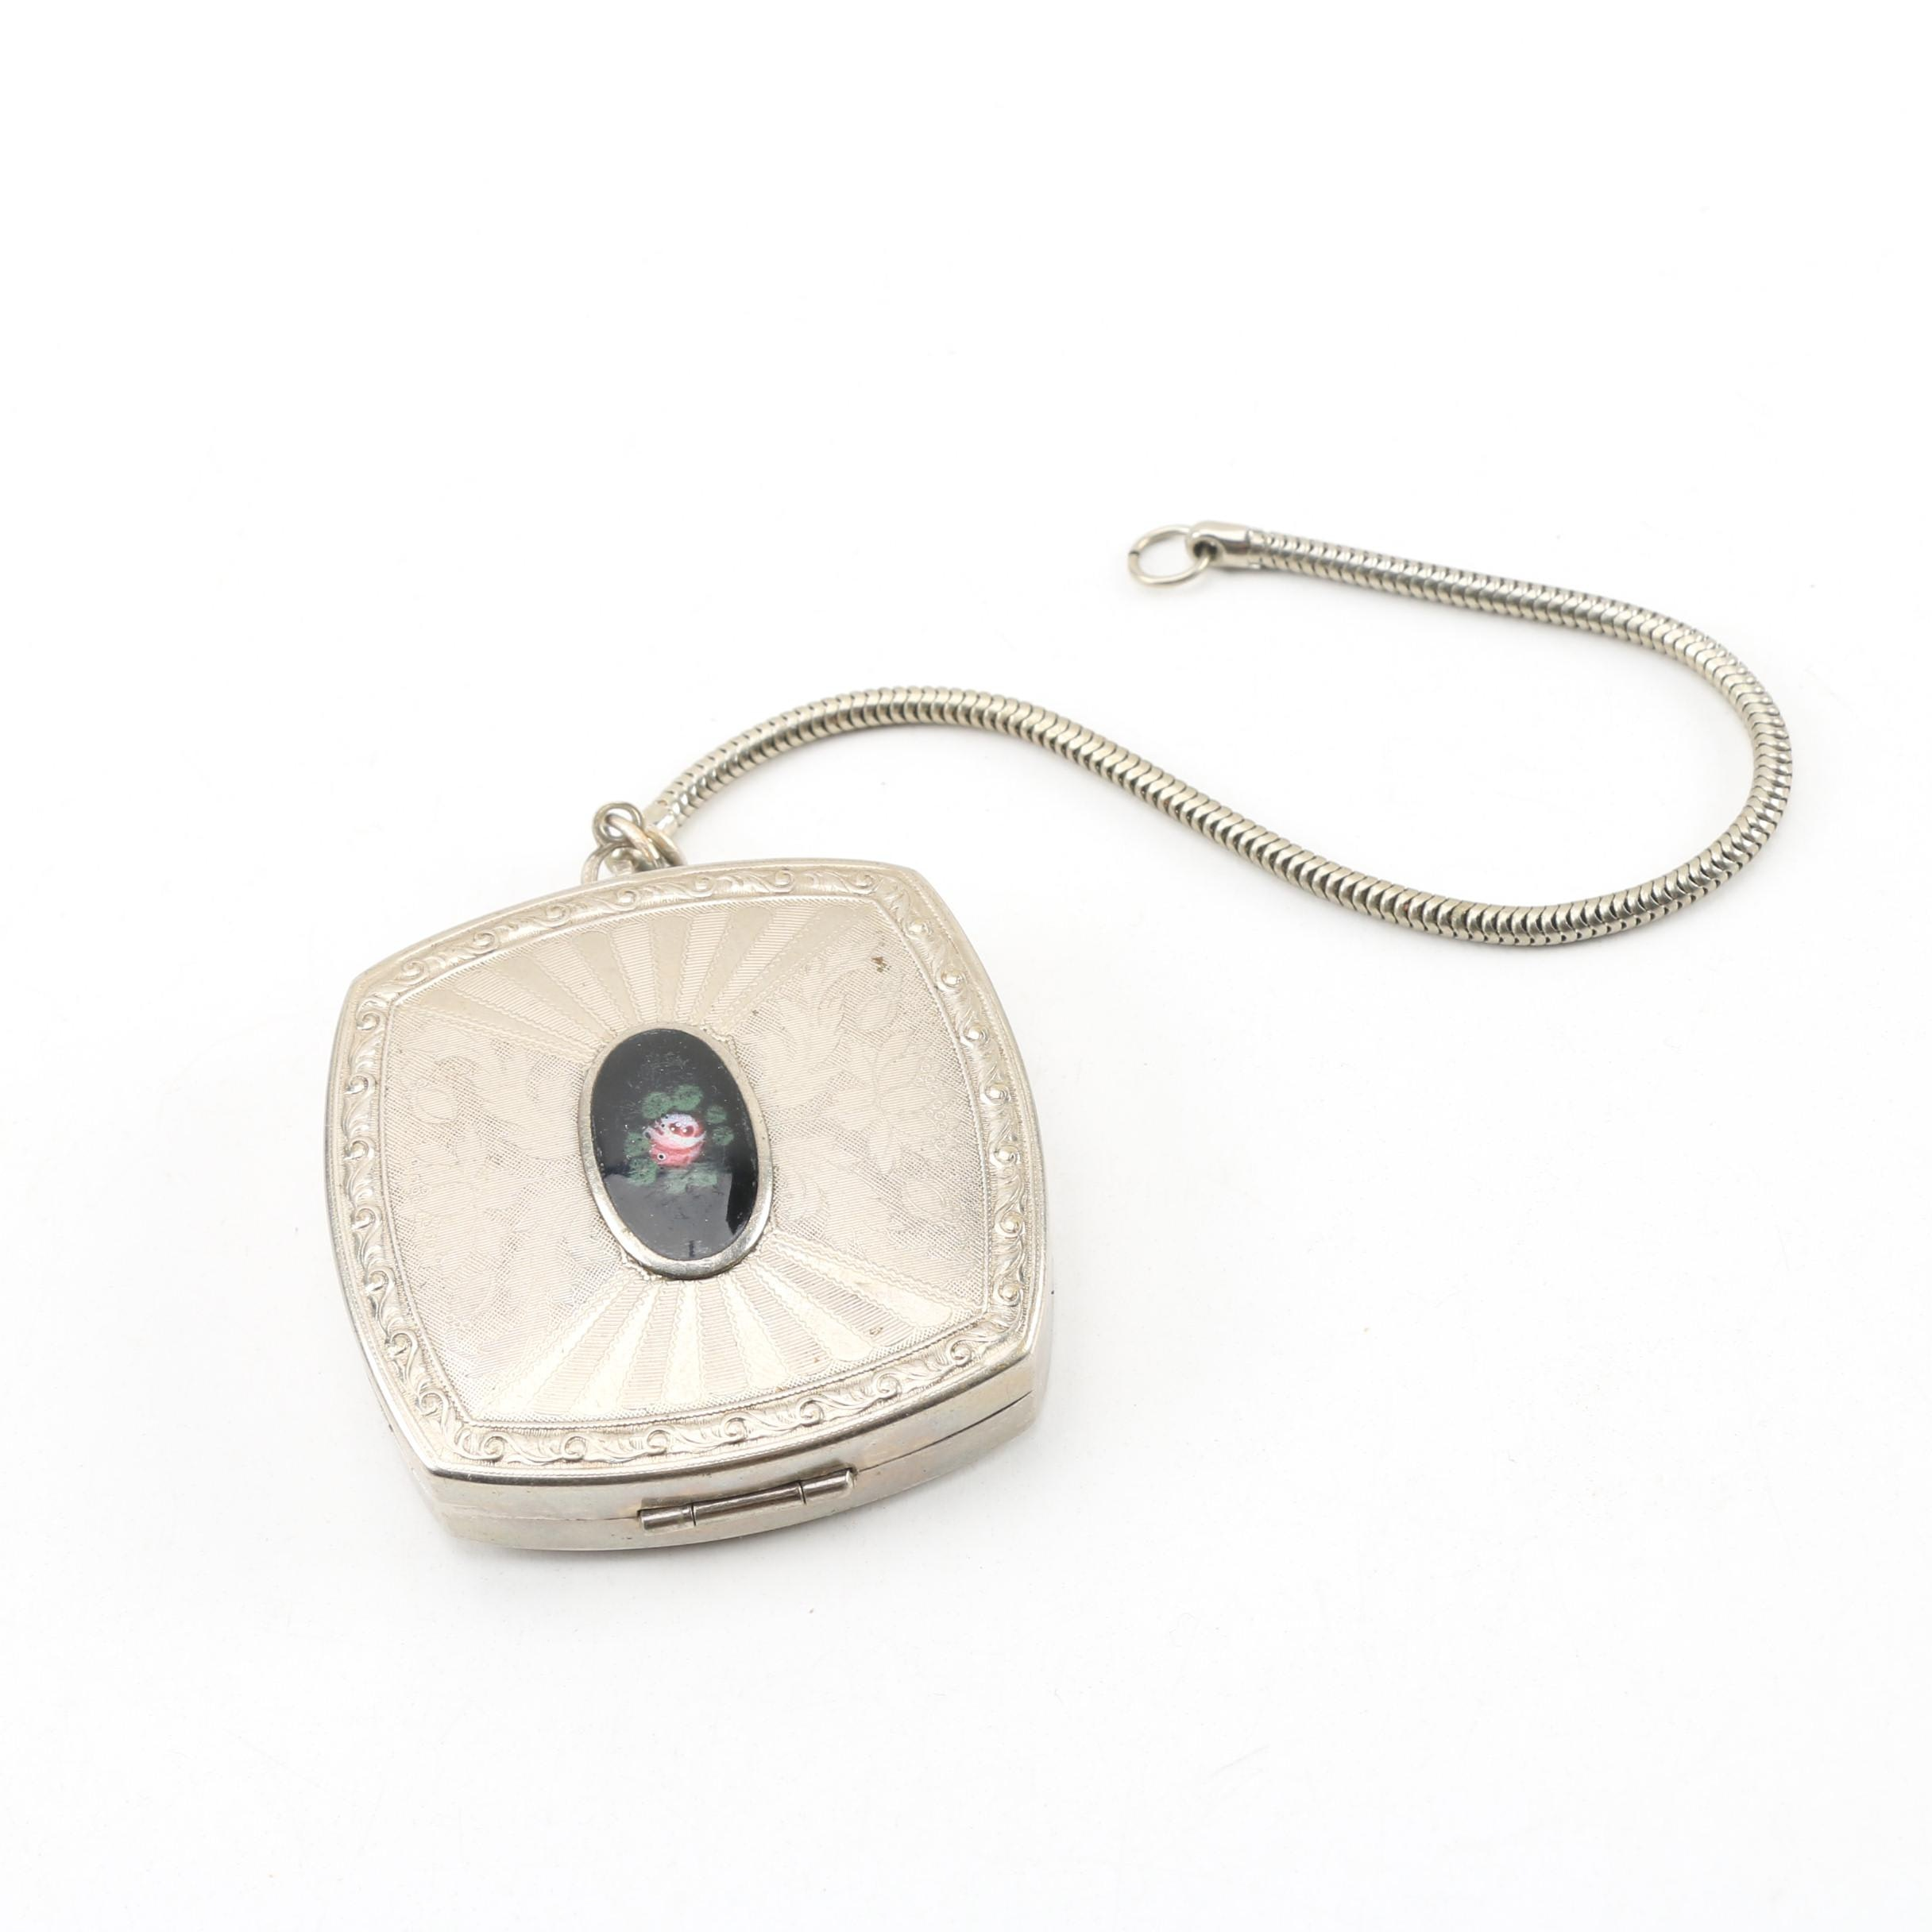 Silver Plate Makeup Compact on Snake Chain